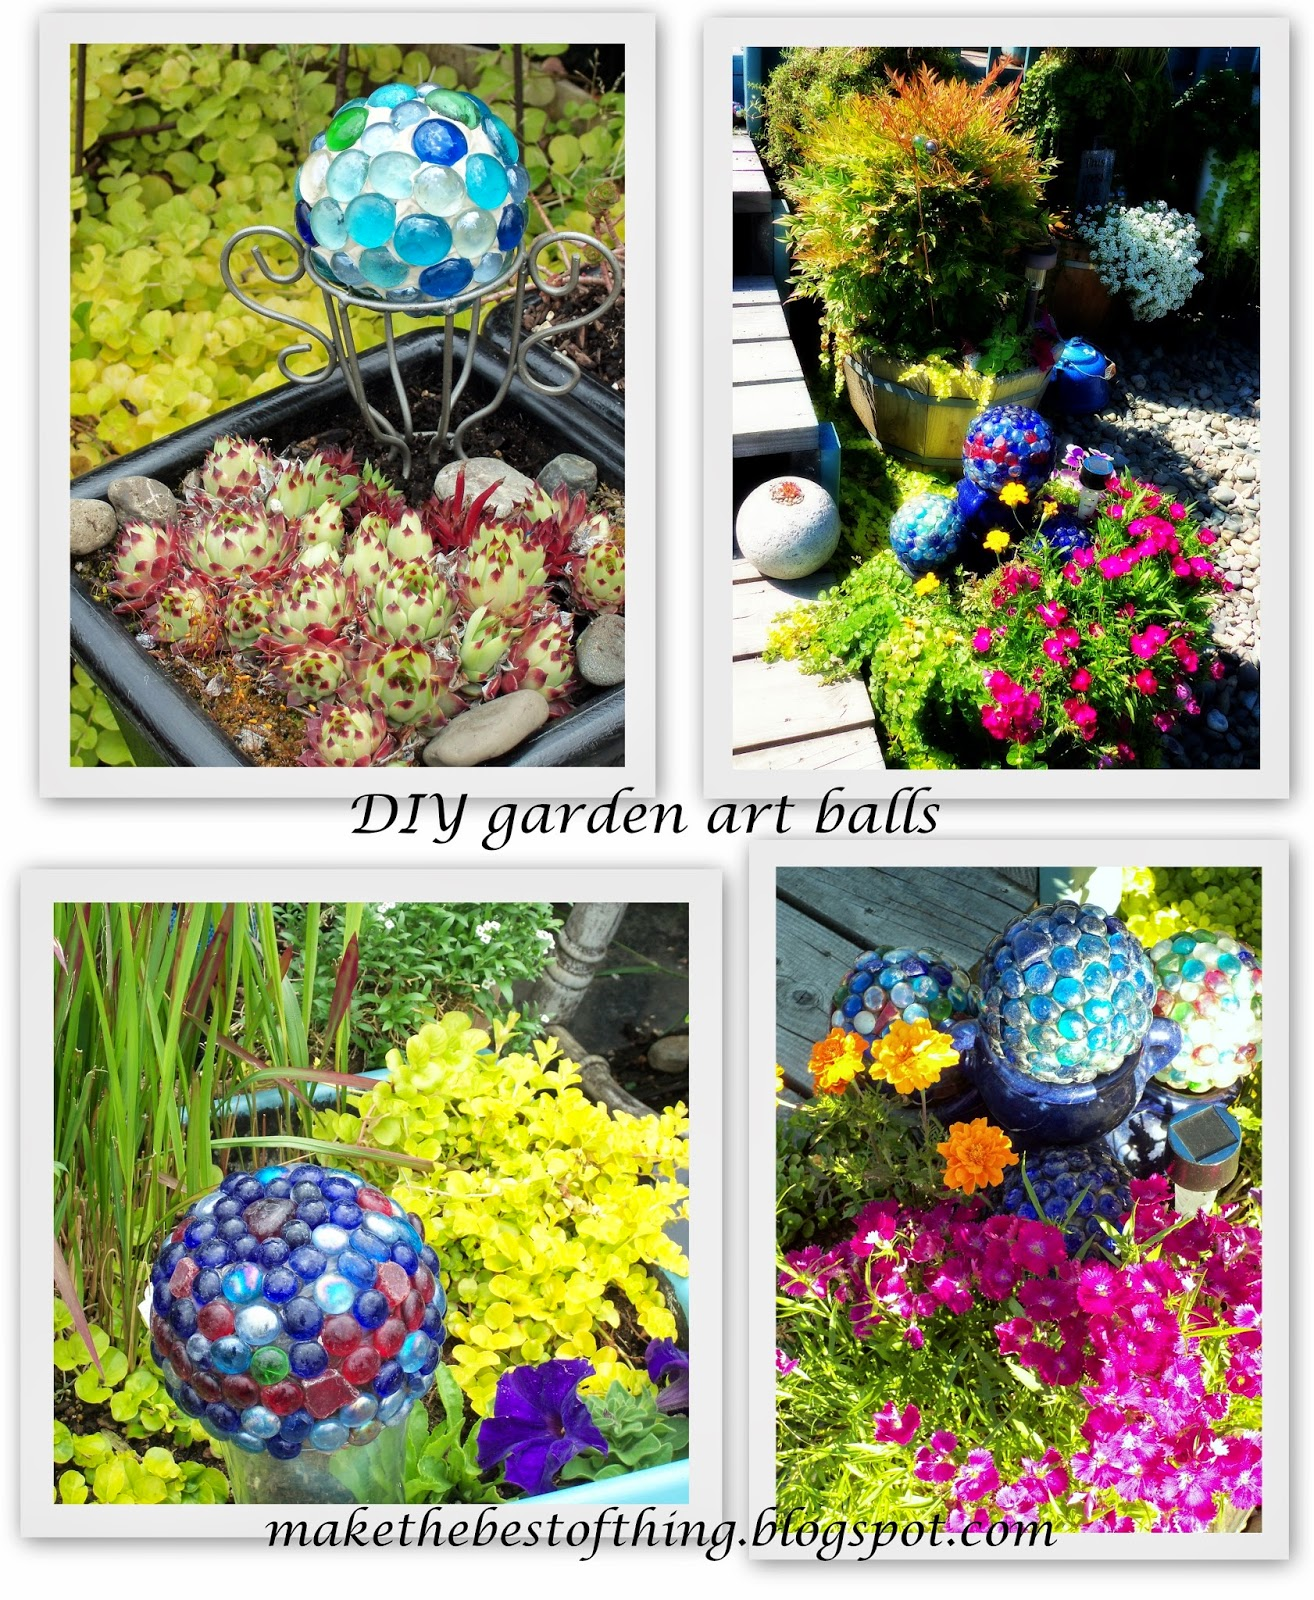 Make The Best Of Things: DIY Garden Art Glass Garden Balls